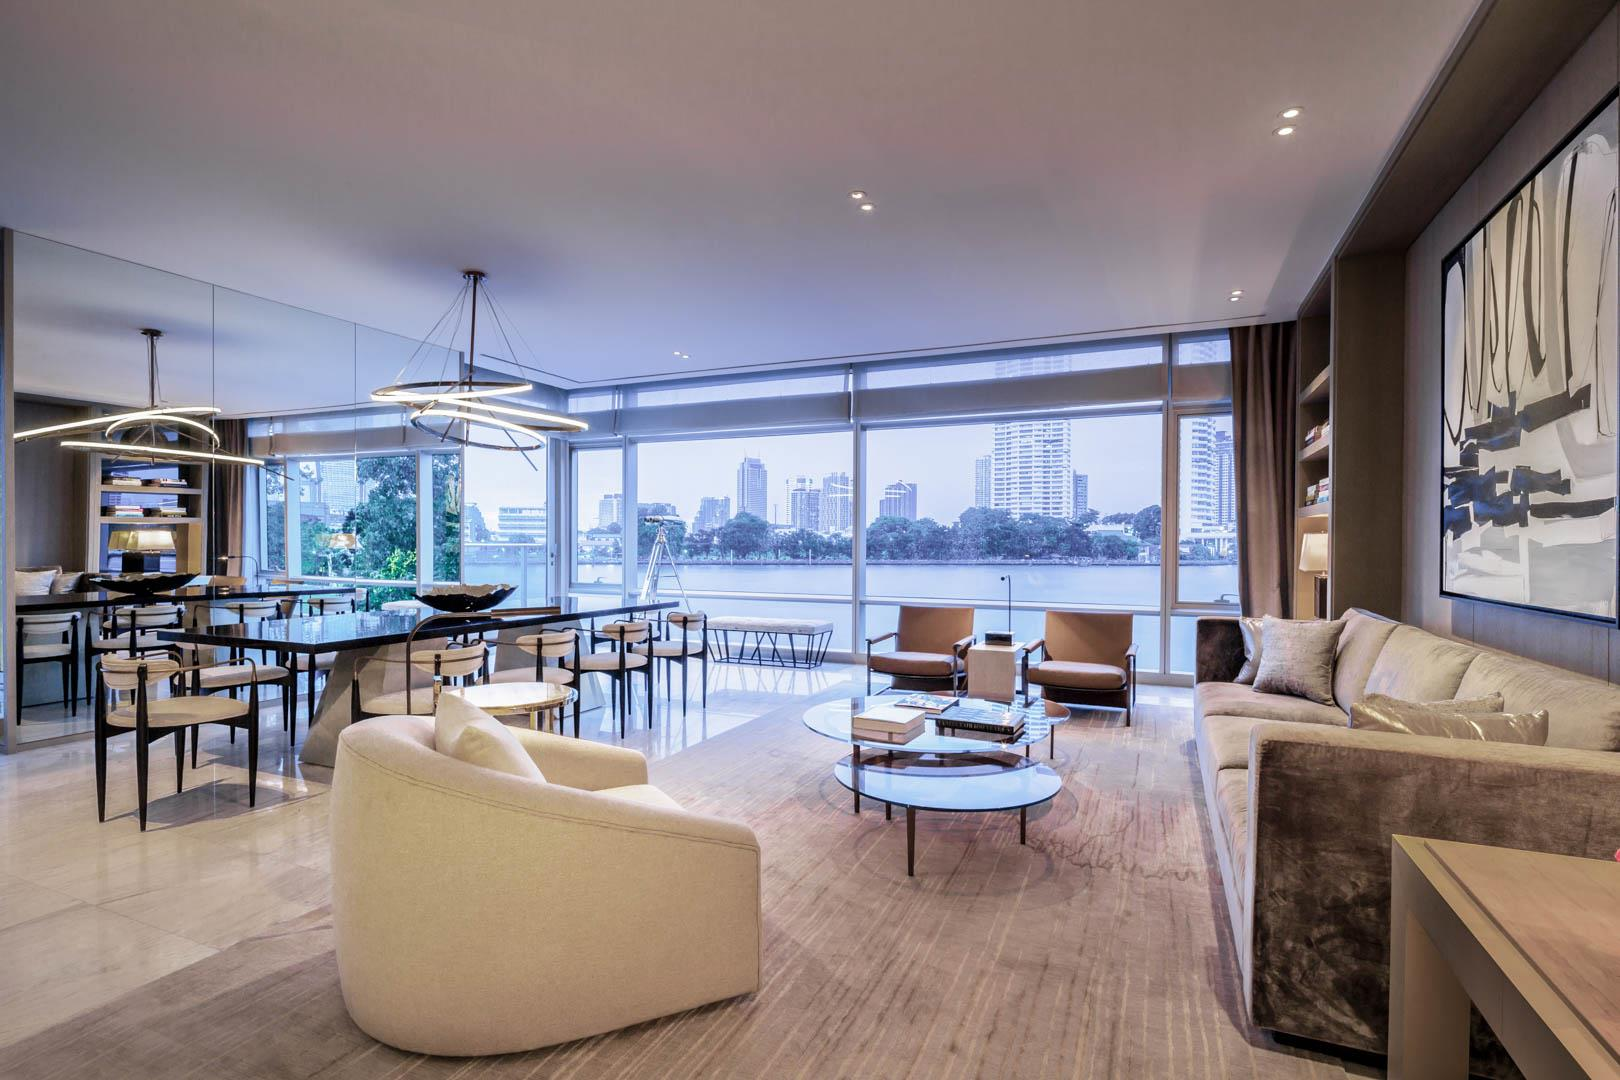 Four Seasons Private Residences Bangkok 4 Bedroom Duplex A Luxury Home For Sale In